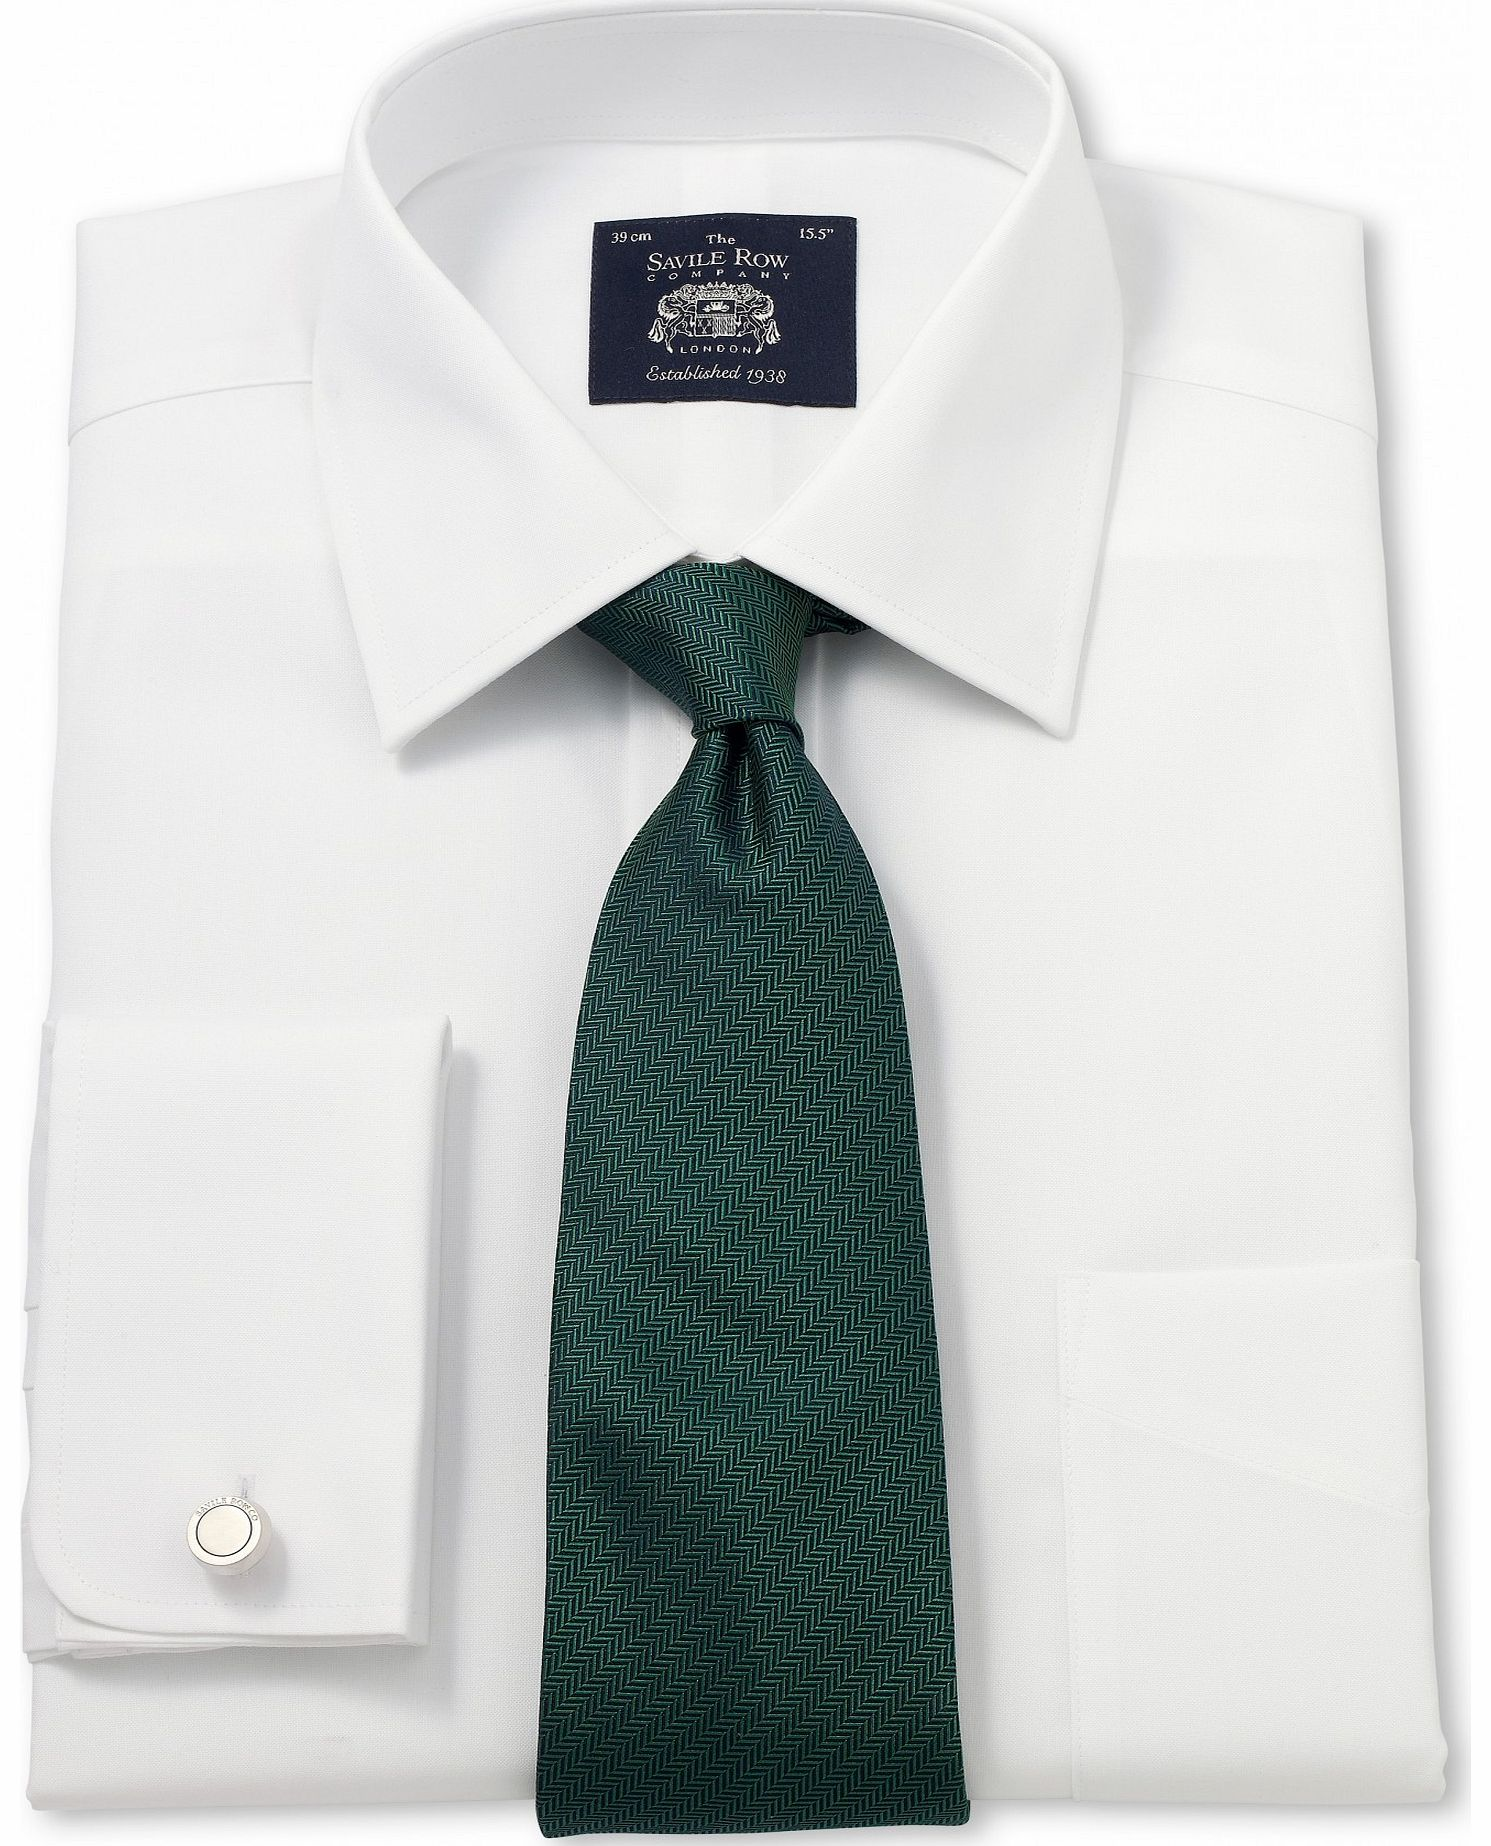 Savile Row Company White Non-Iron Classic Fit Shirt 18`` Standard & product image